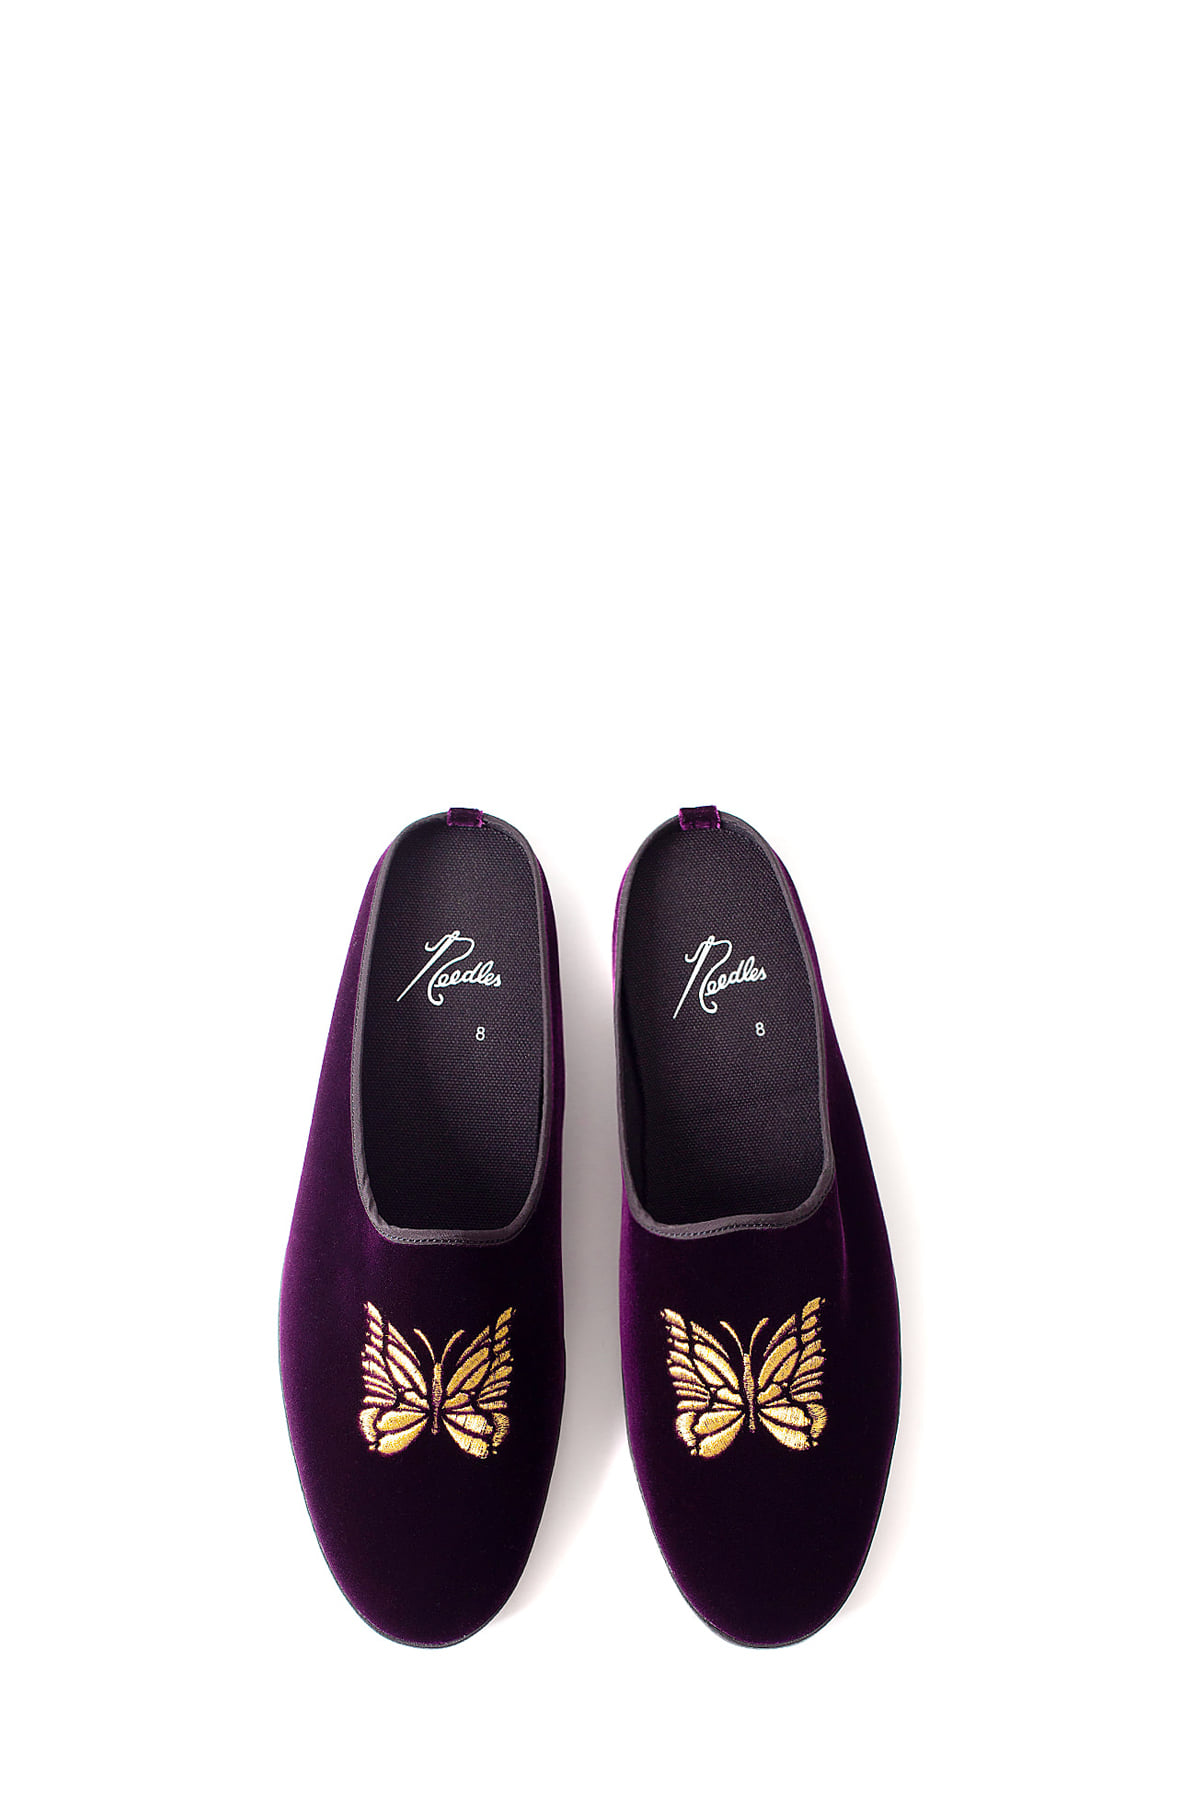 NEEDLES : Papillon Emb (Purple)